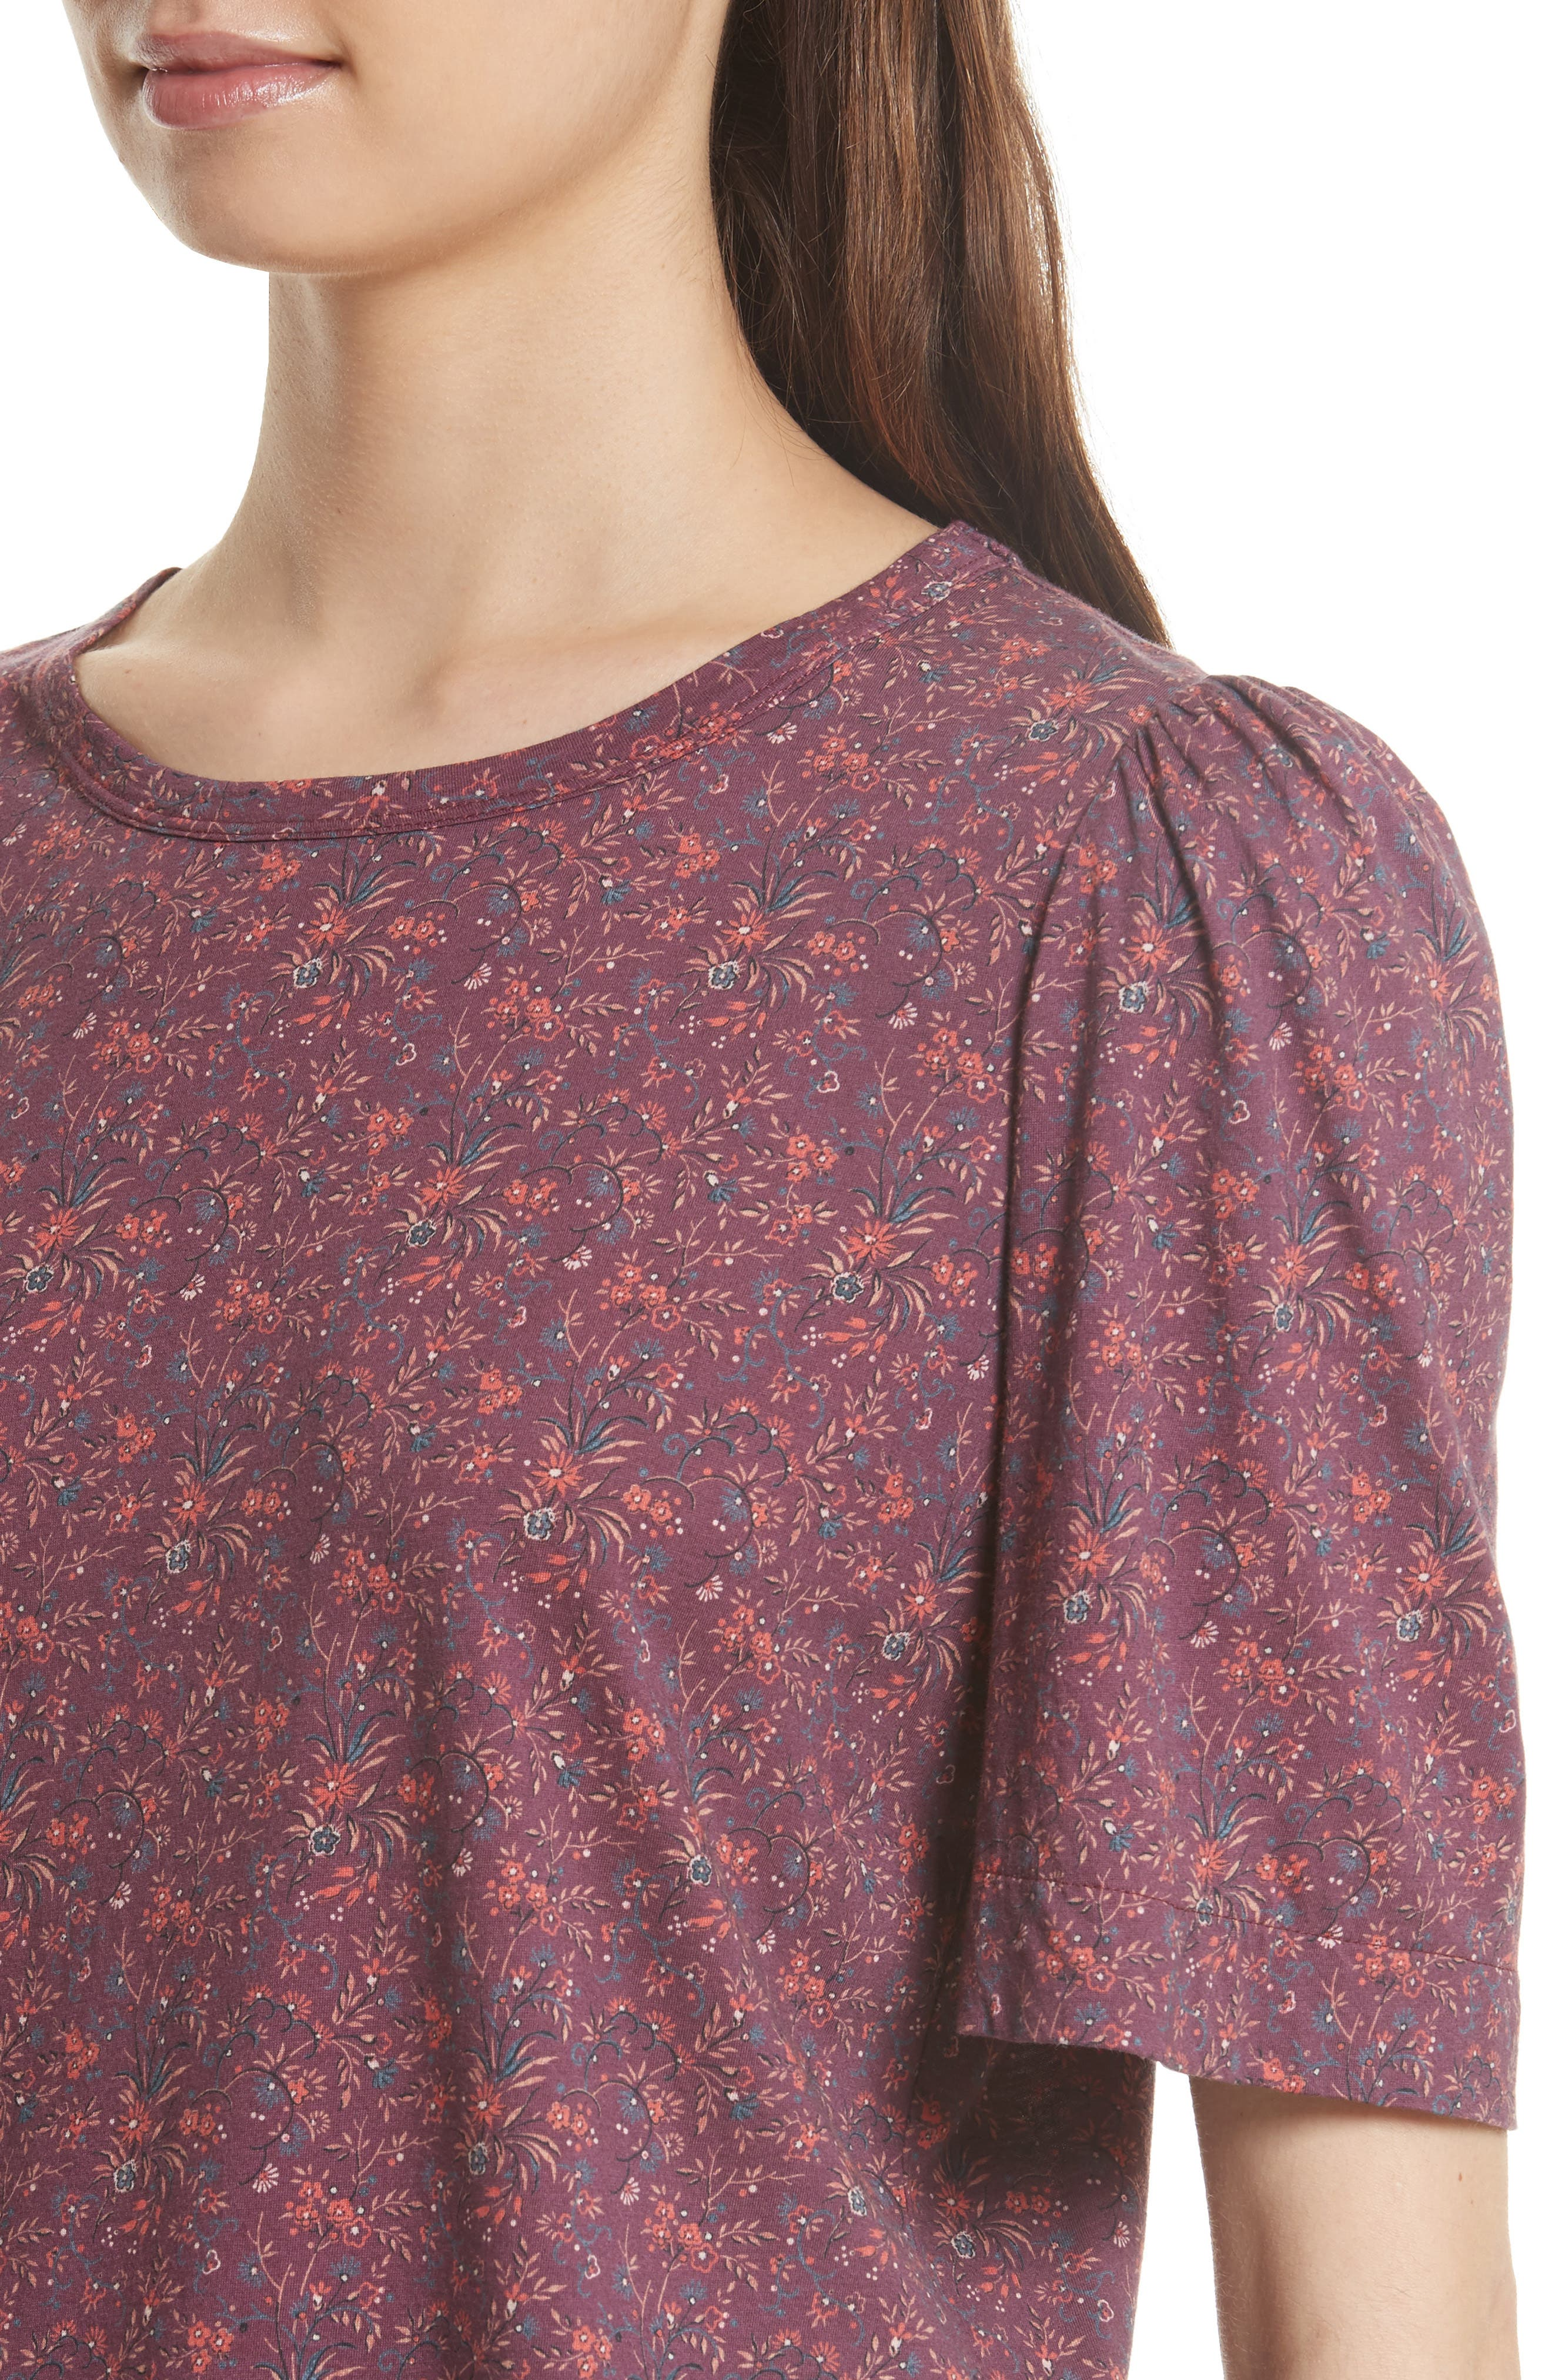 Rebecca Taylor Brittany Floral Jersey Top,                             Alternate thumbnail 4, color,                             Plum Combo